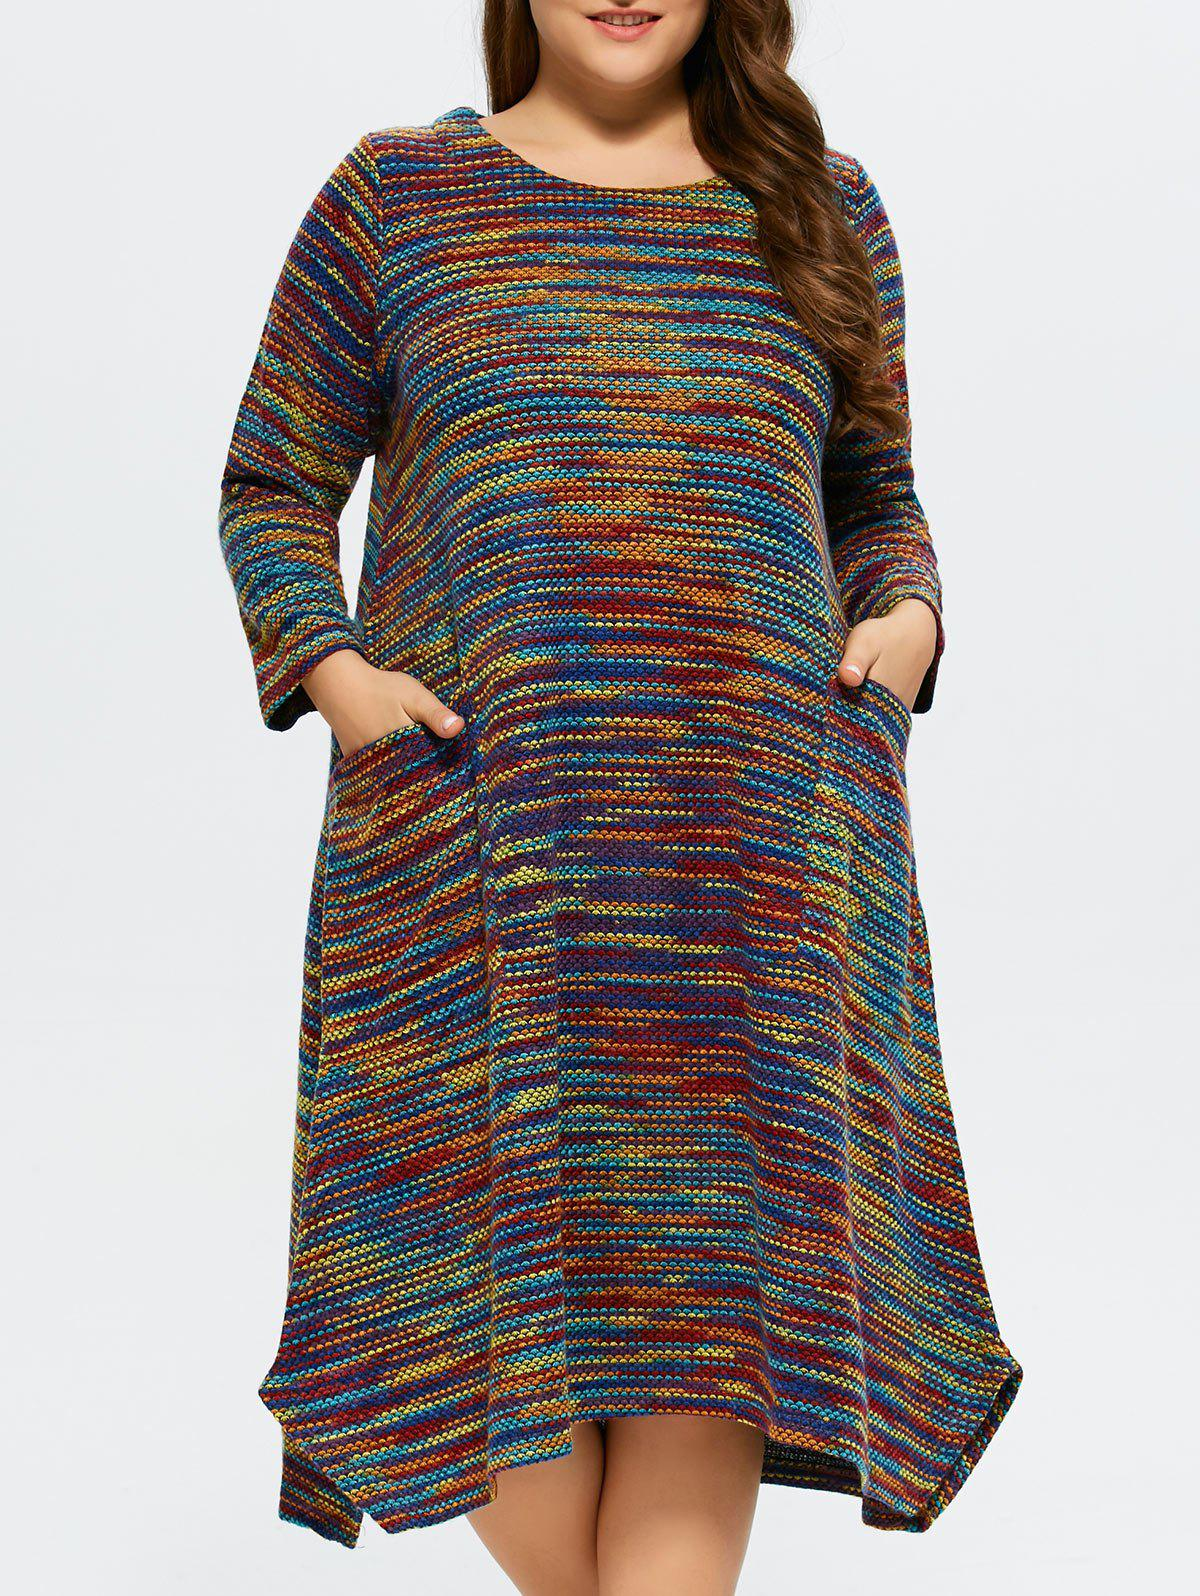 Plus Size Espace Dyed Sweater Dress - Bleu 3XL